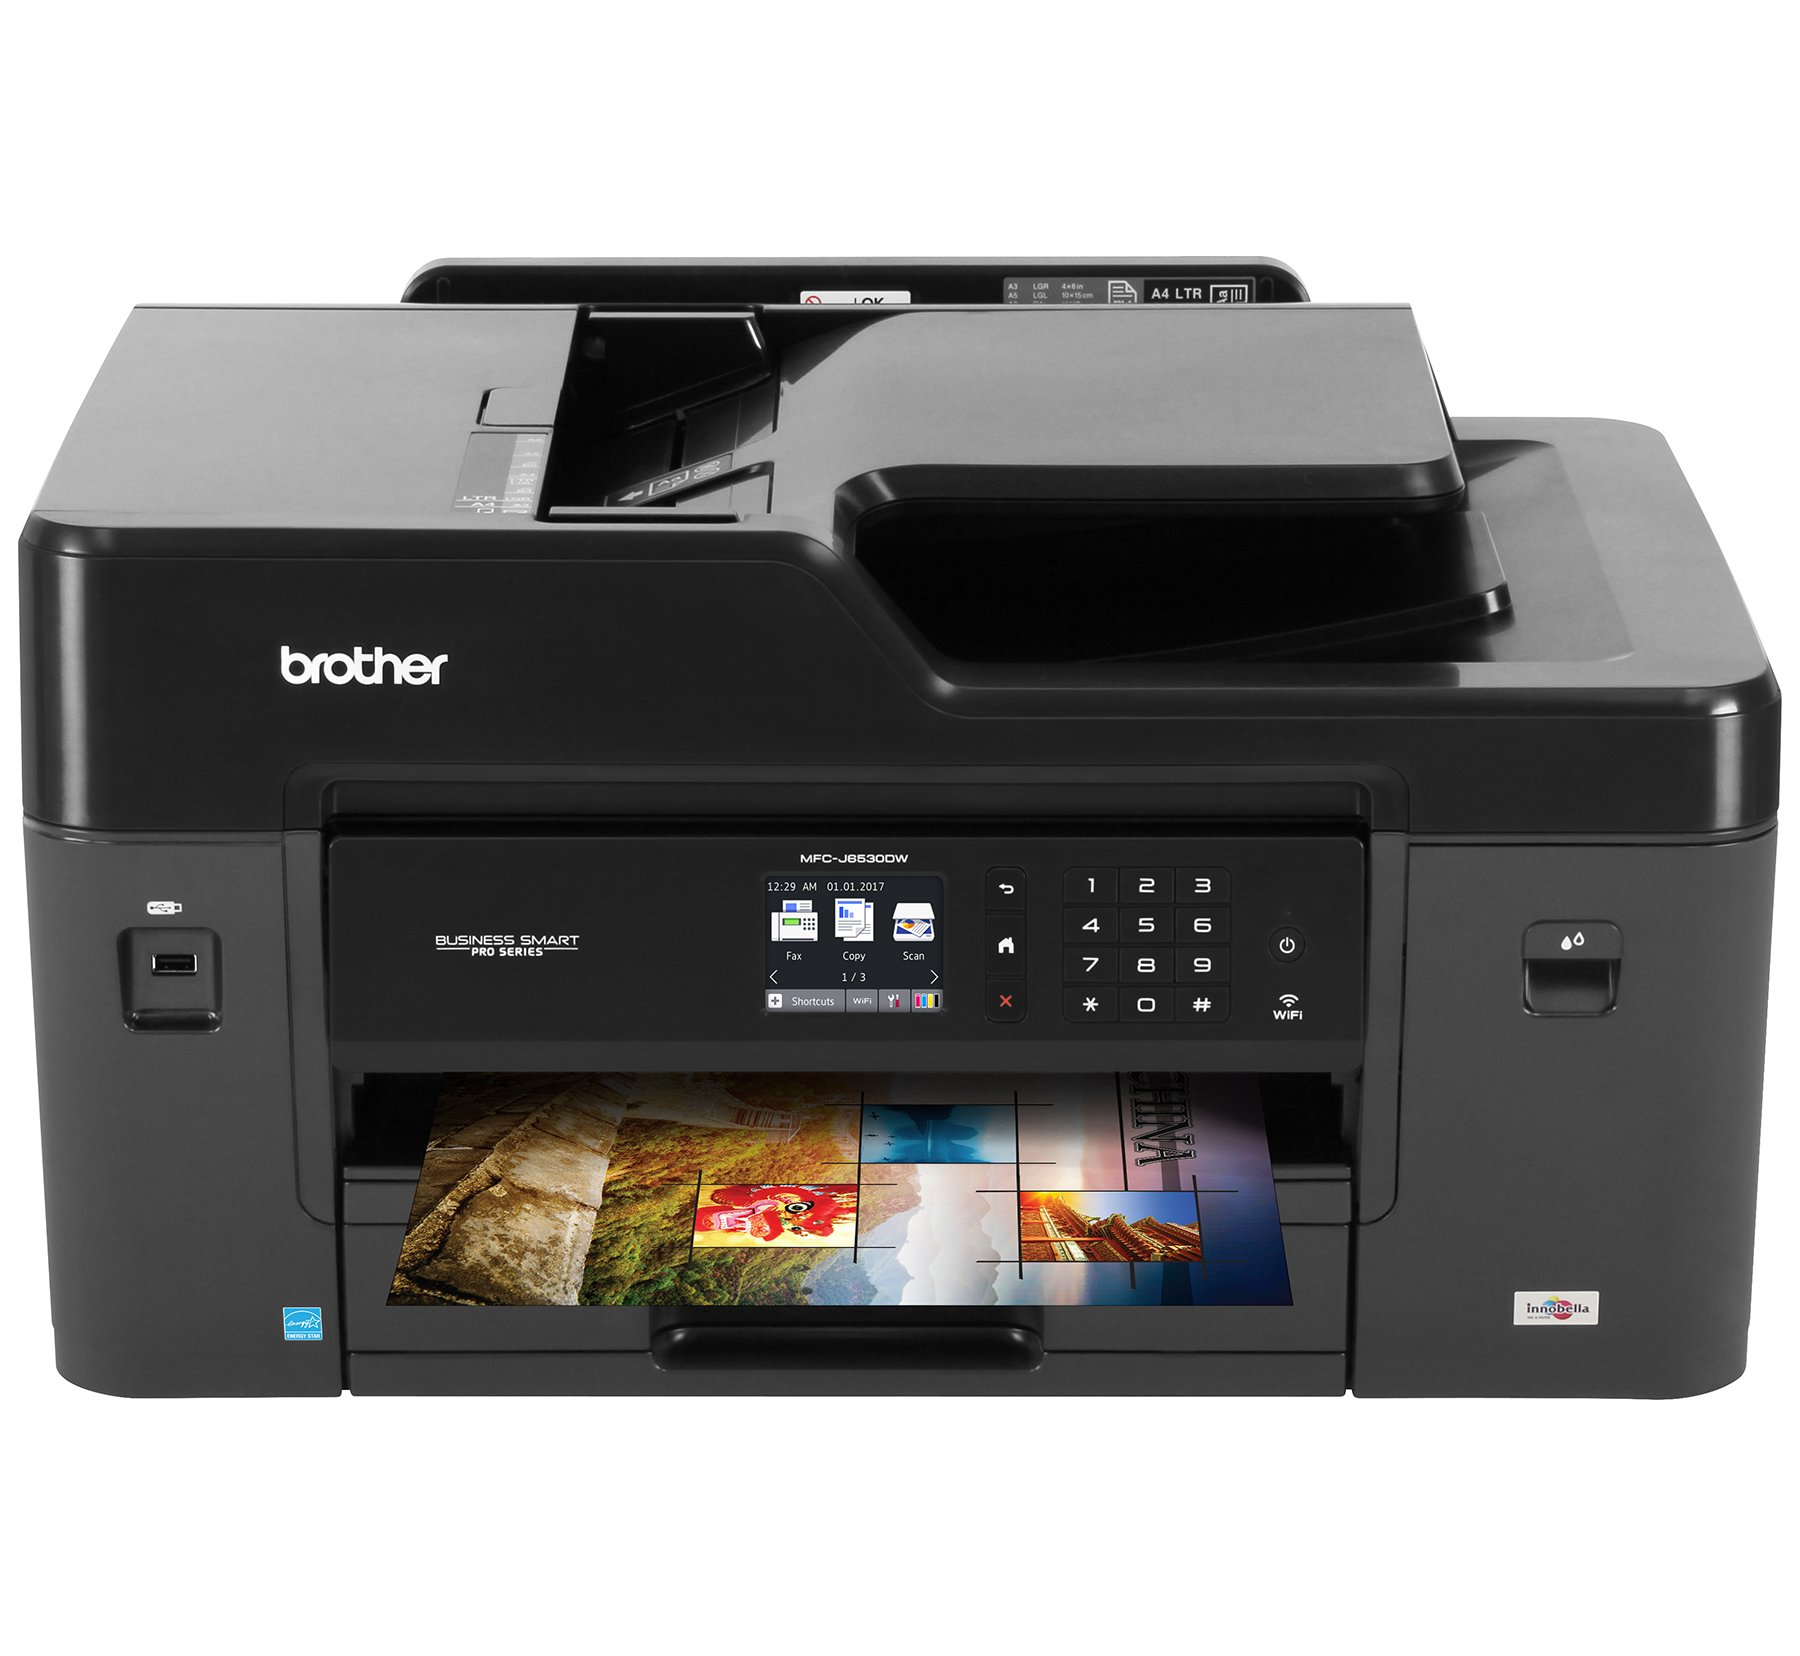 Brother Printer MFCJ6530DW Wireless Color Printer with Scanner, Copier & Fax, Amazon Dash Replenishment Enabled, Inkjet All-in-One